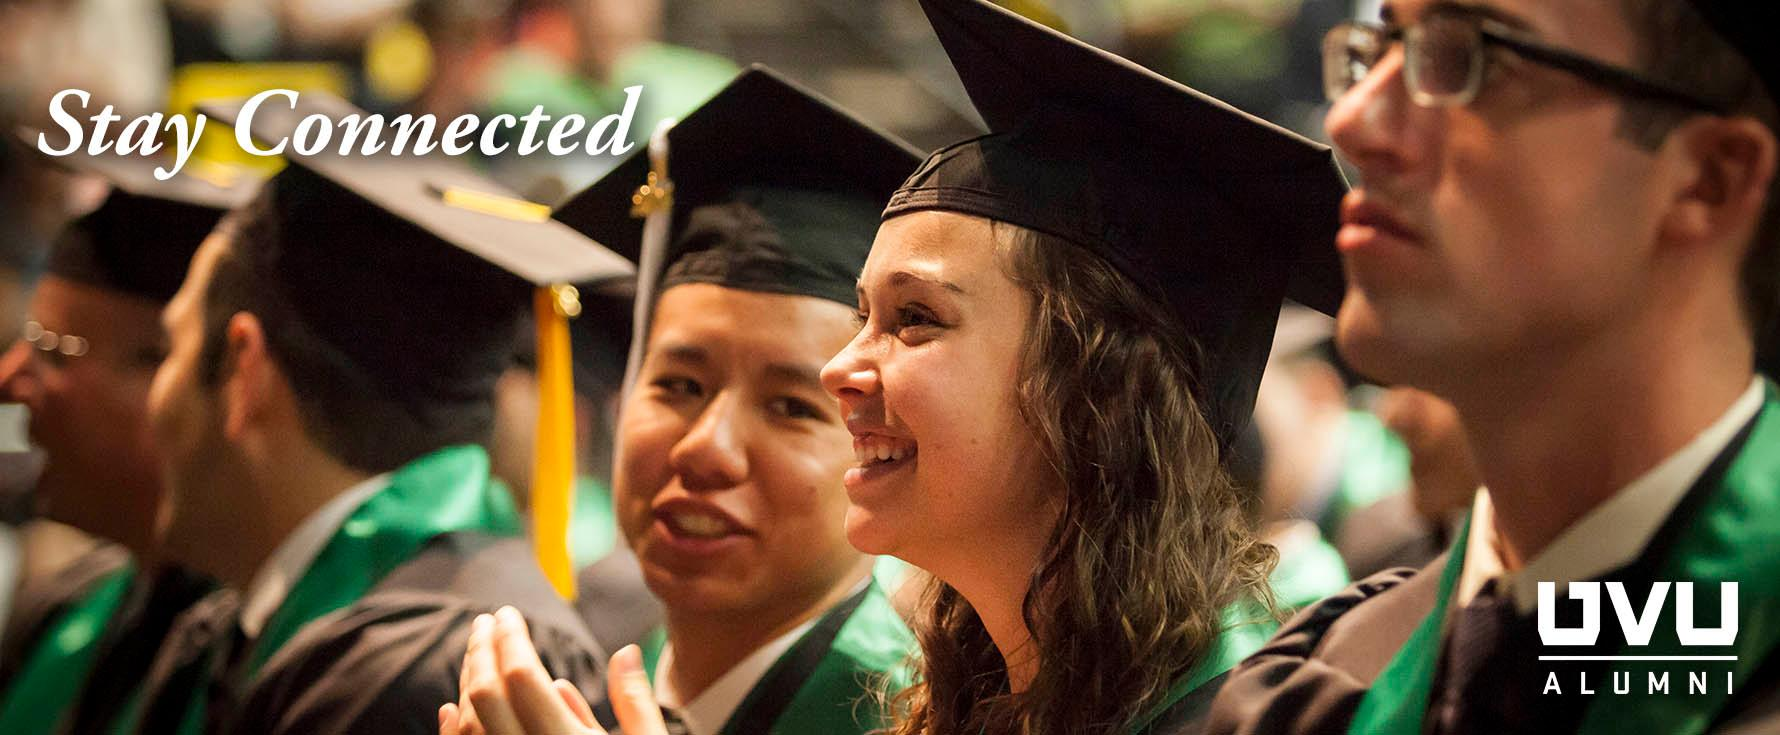 Stay connected with UVU Alumni.